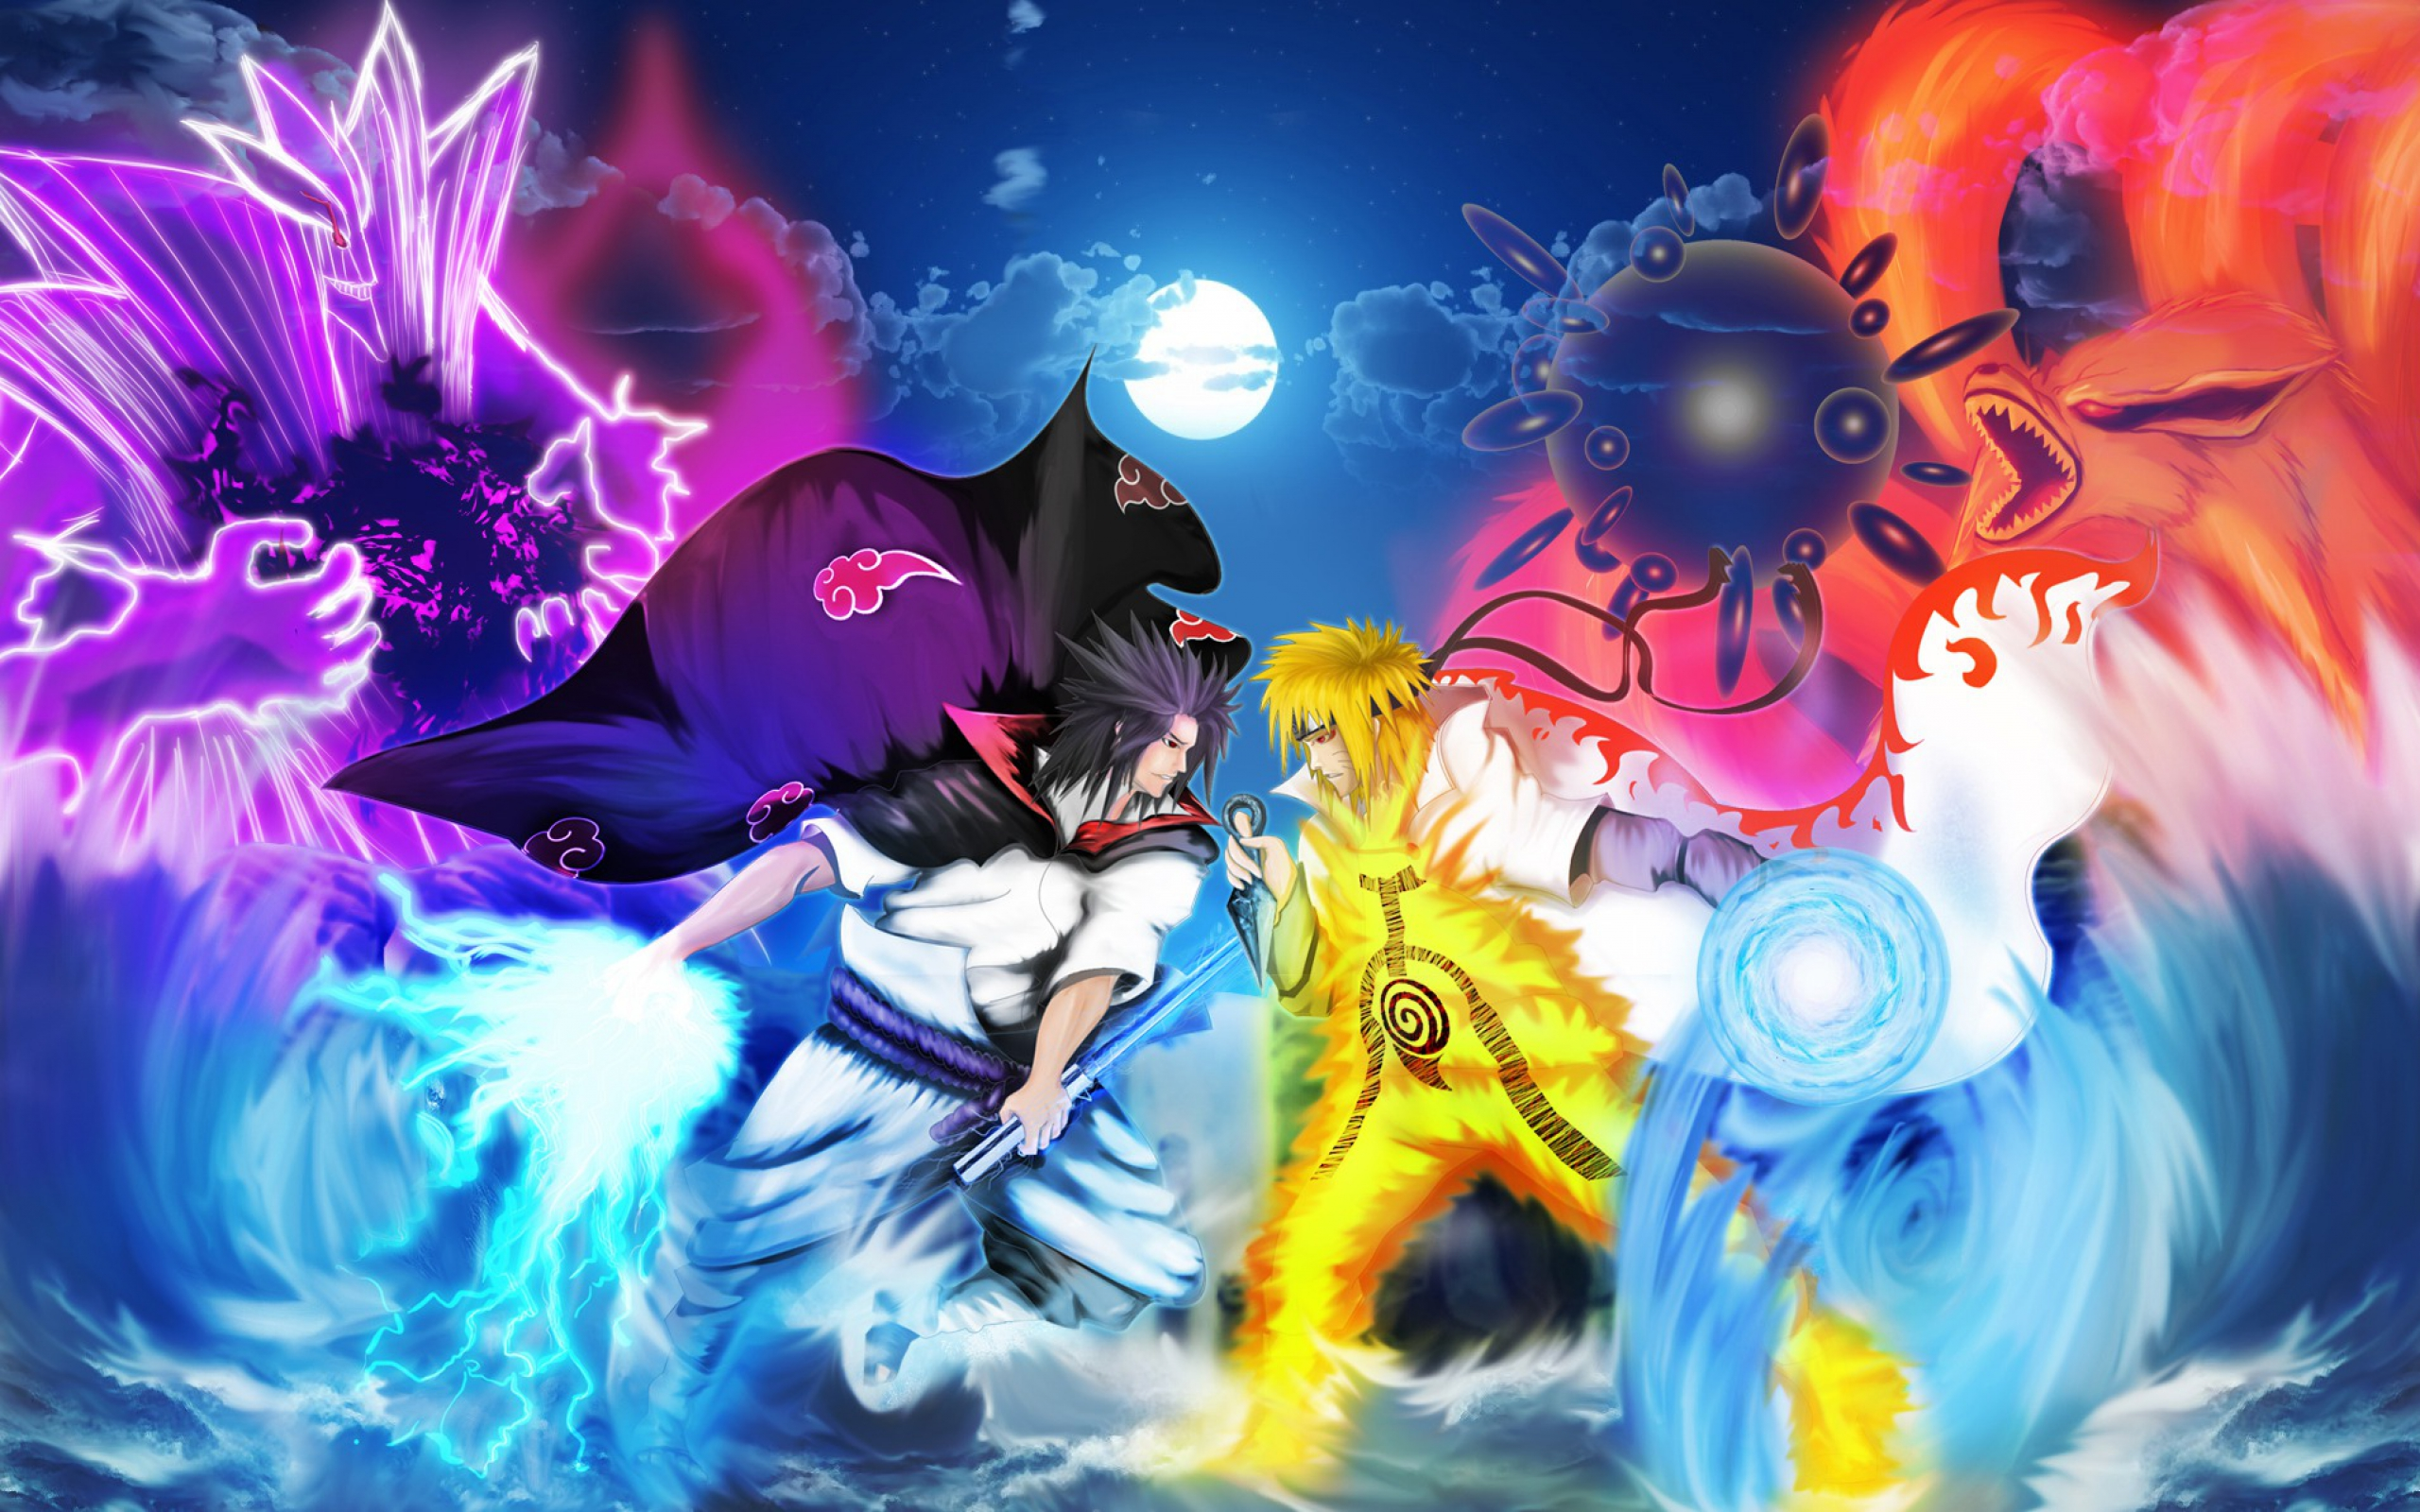 naruto live wallpapers free download